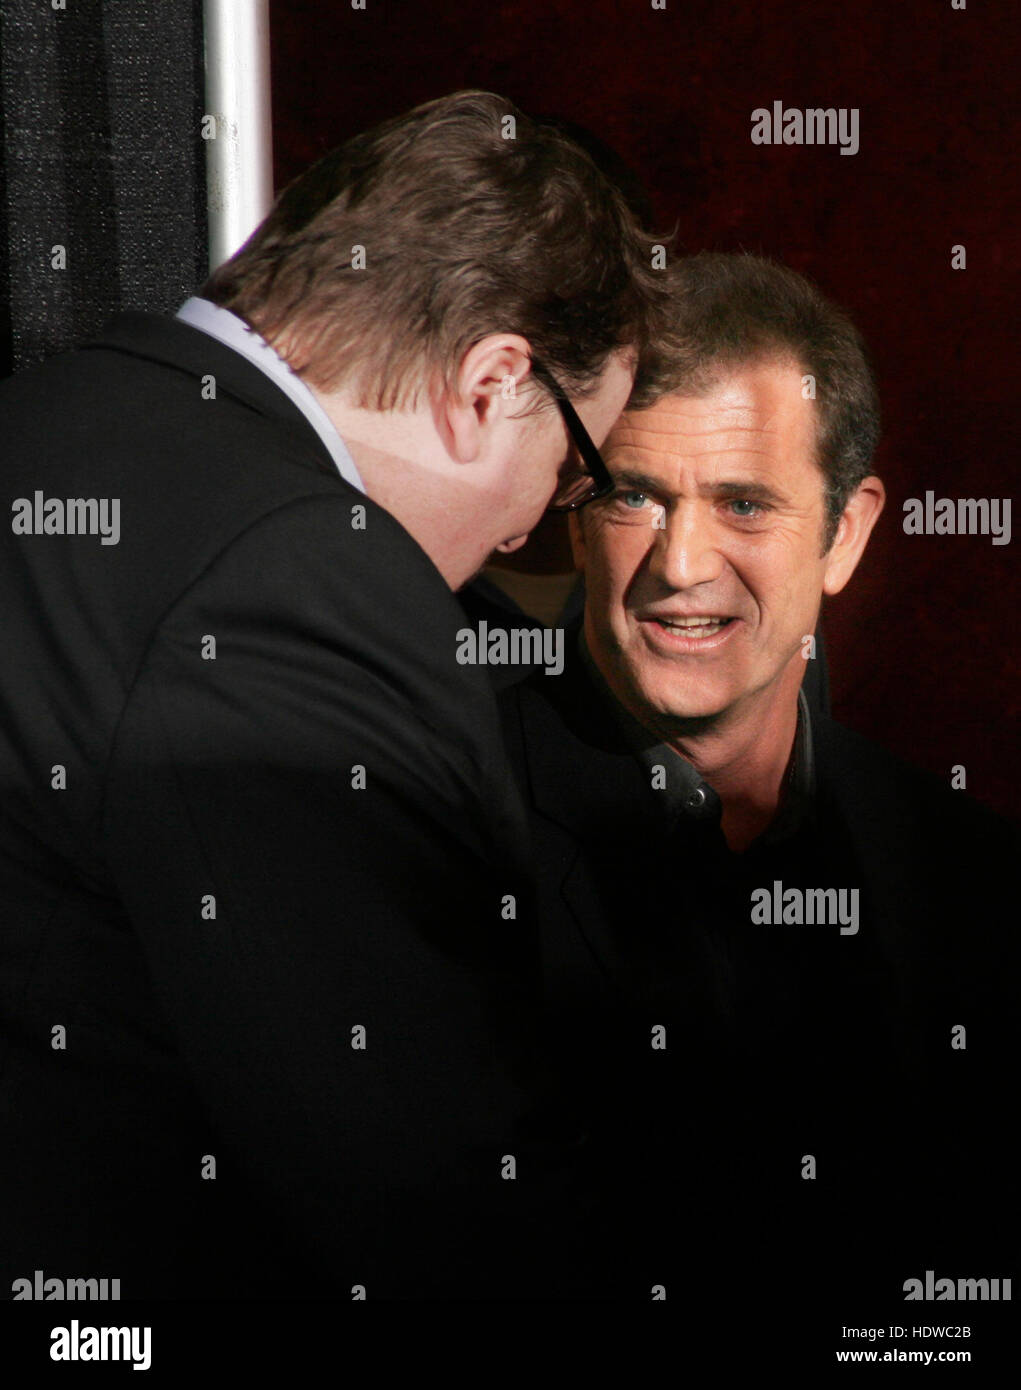 Directors Mel Gibson, right, and Michael Moore have a chat backstage at the People's Choice Awards in  Pasadena, - Stock Image